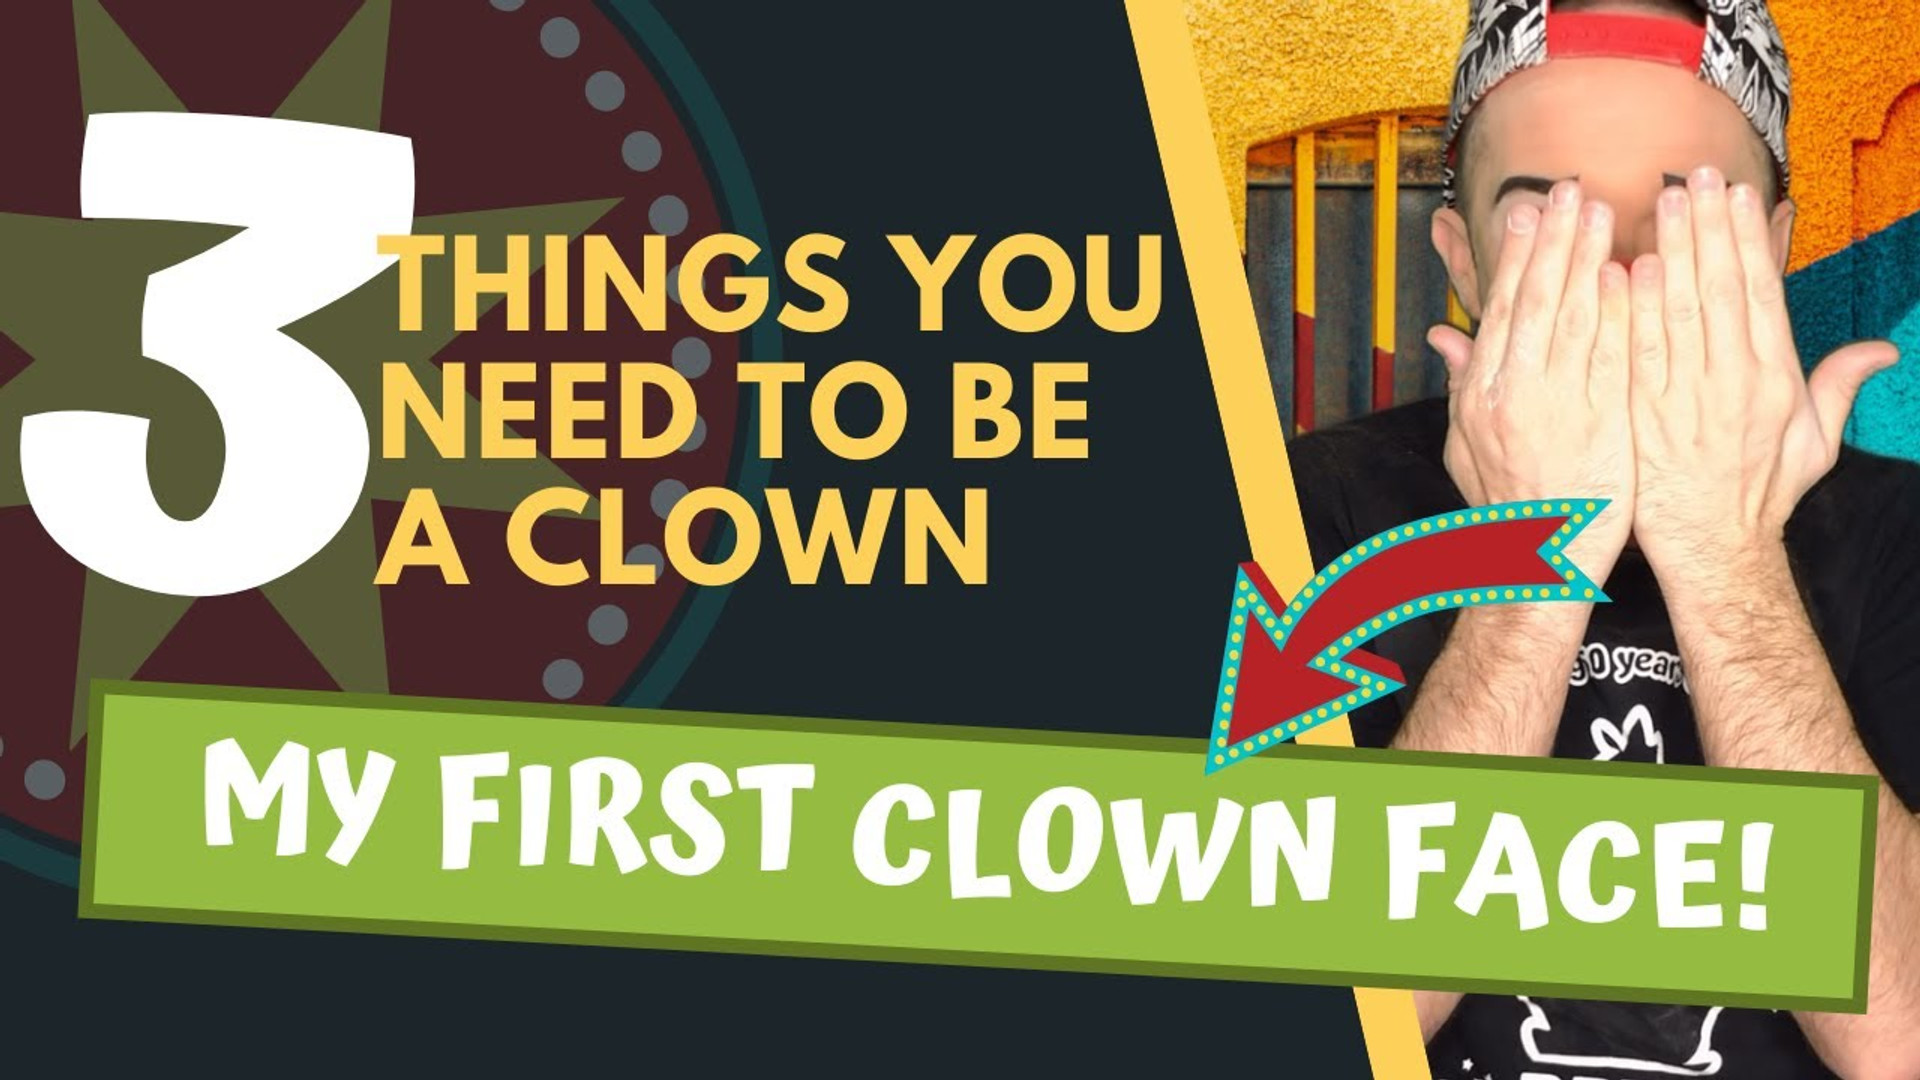 3 Things You Need To Be A Clown